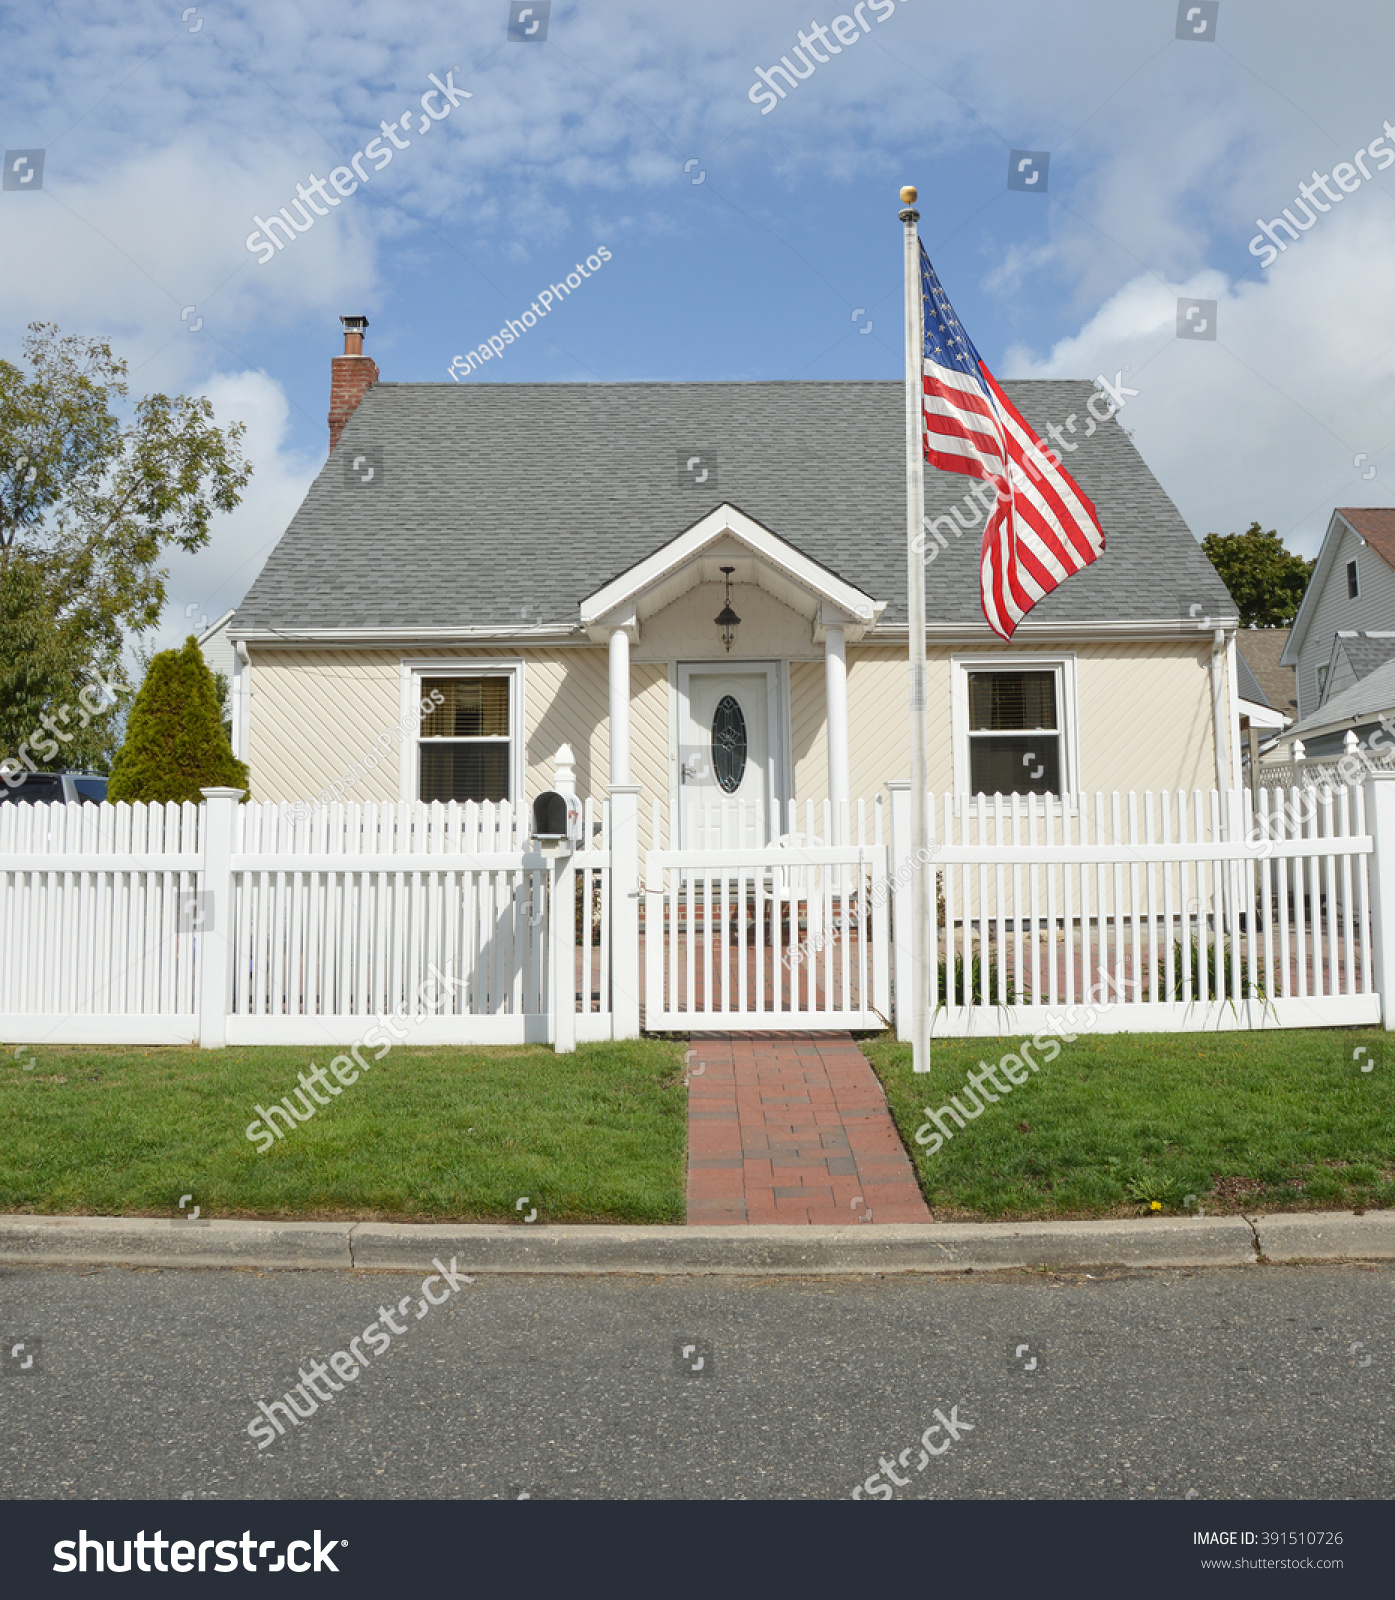 Residential Bungalow Part - 43: American Flag Pole Suburban Bungalow Style Home White Picket Fence Blue Sky  Clouds Day Residential Neighborhood